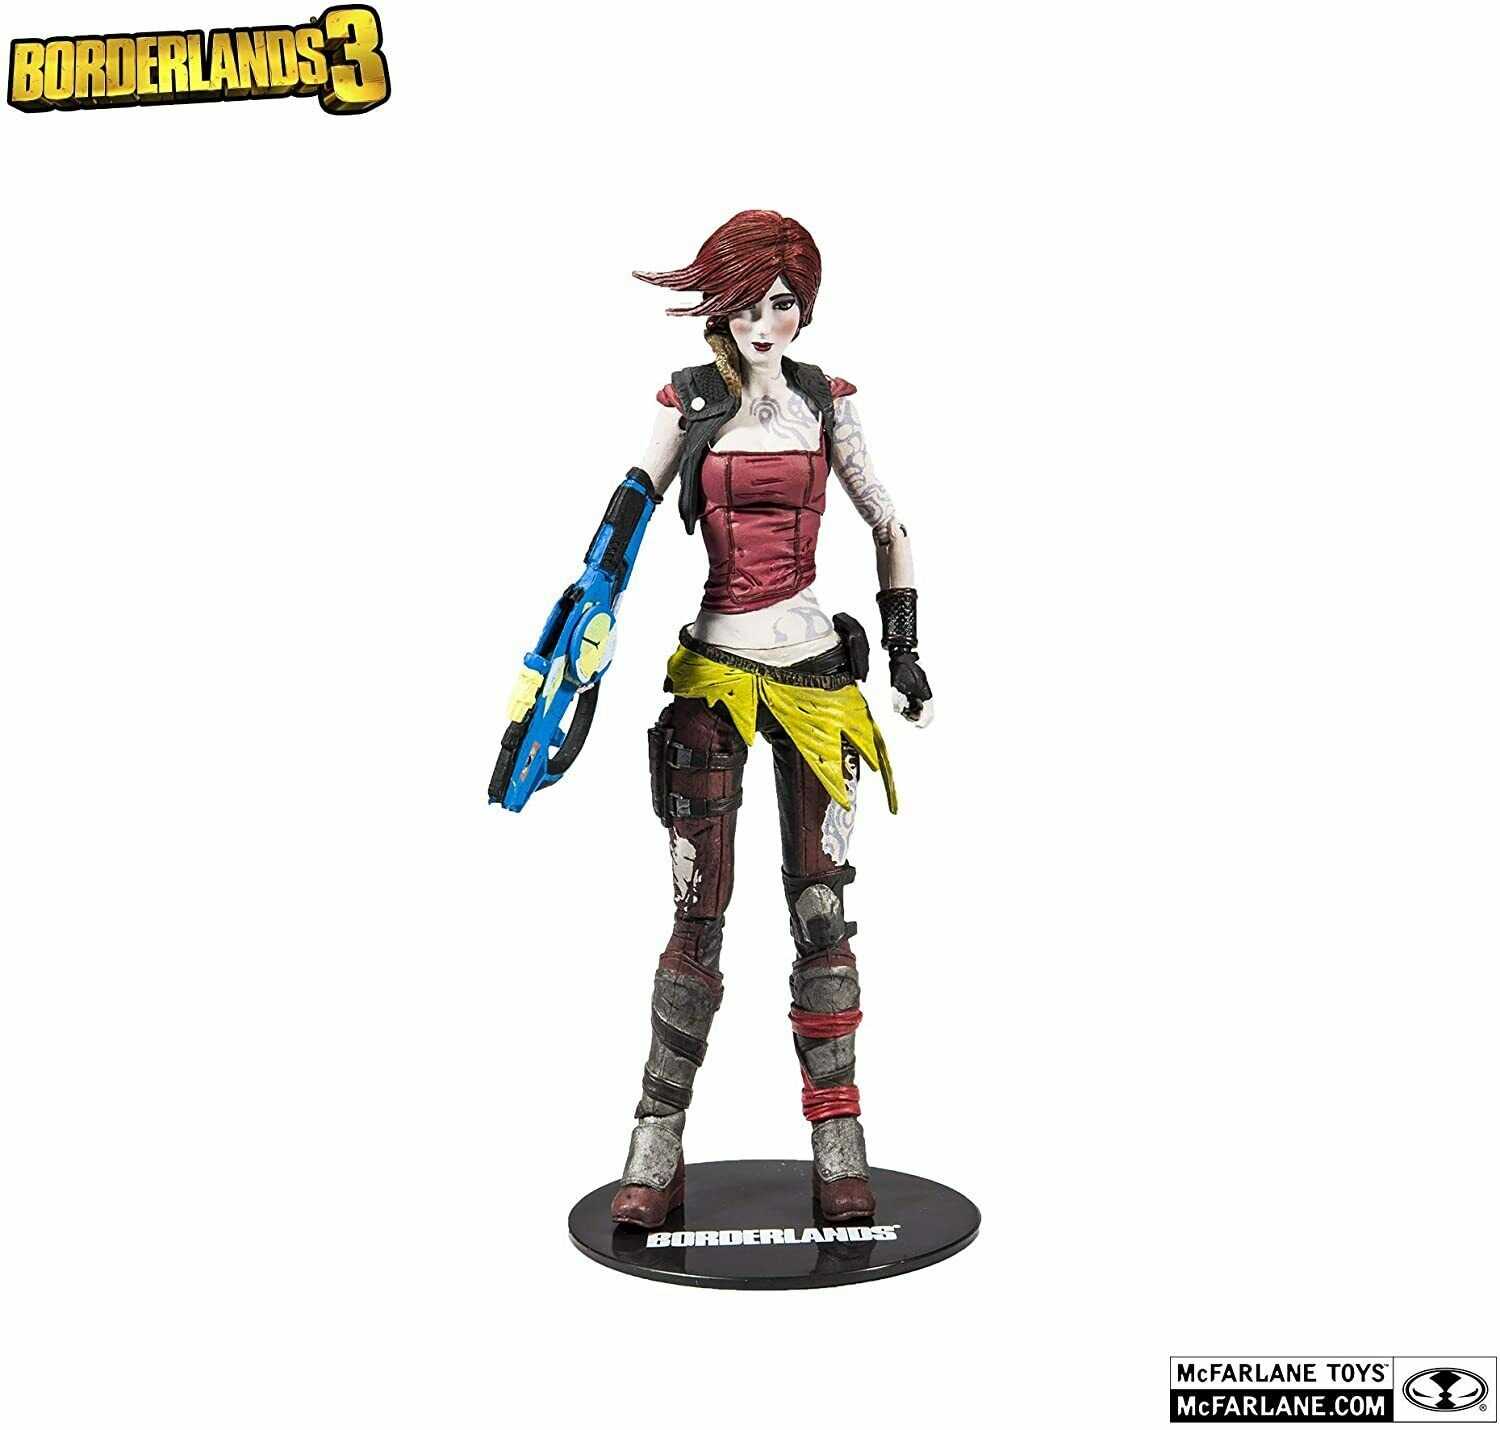 Primary image for McFarlane Toys 10253-6 Borderlands - Lilith Action Figure